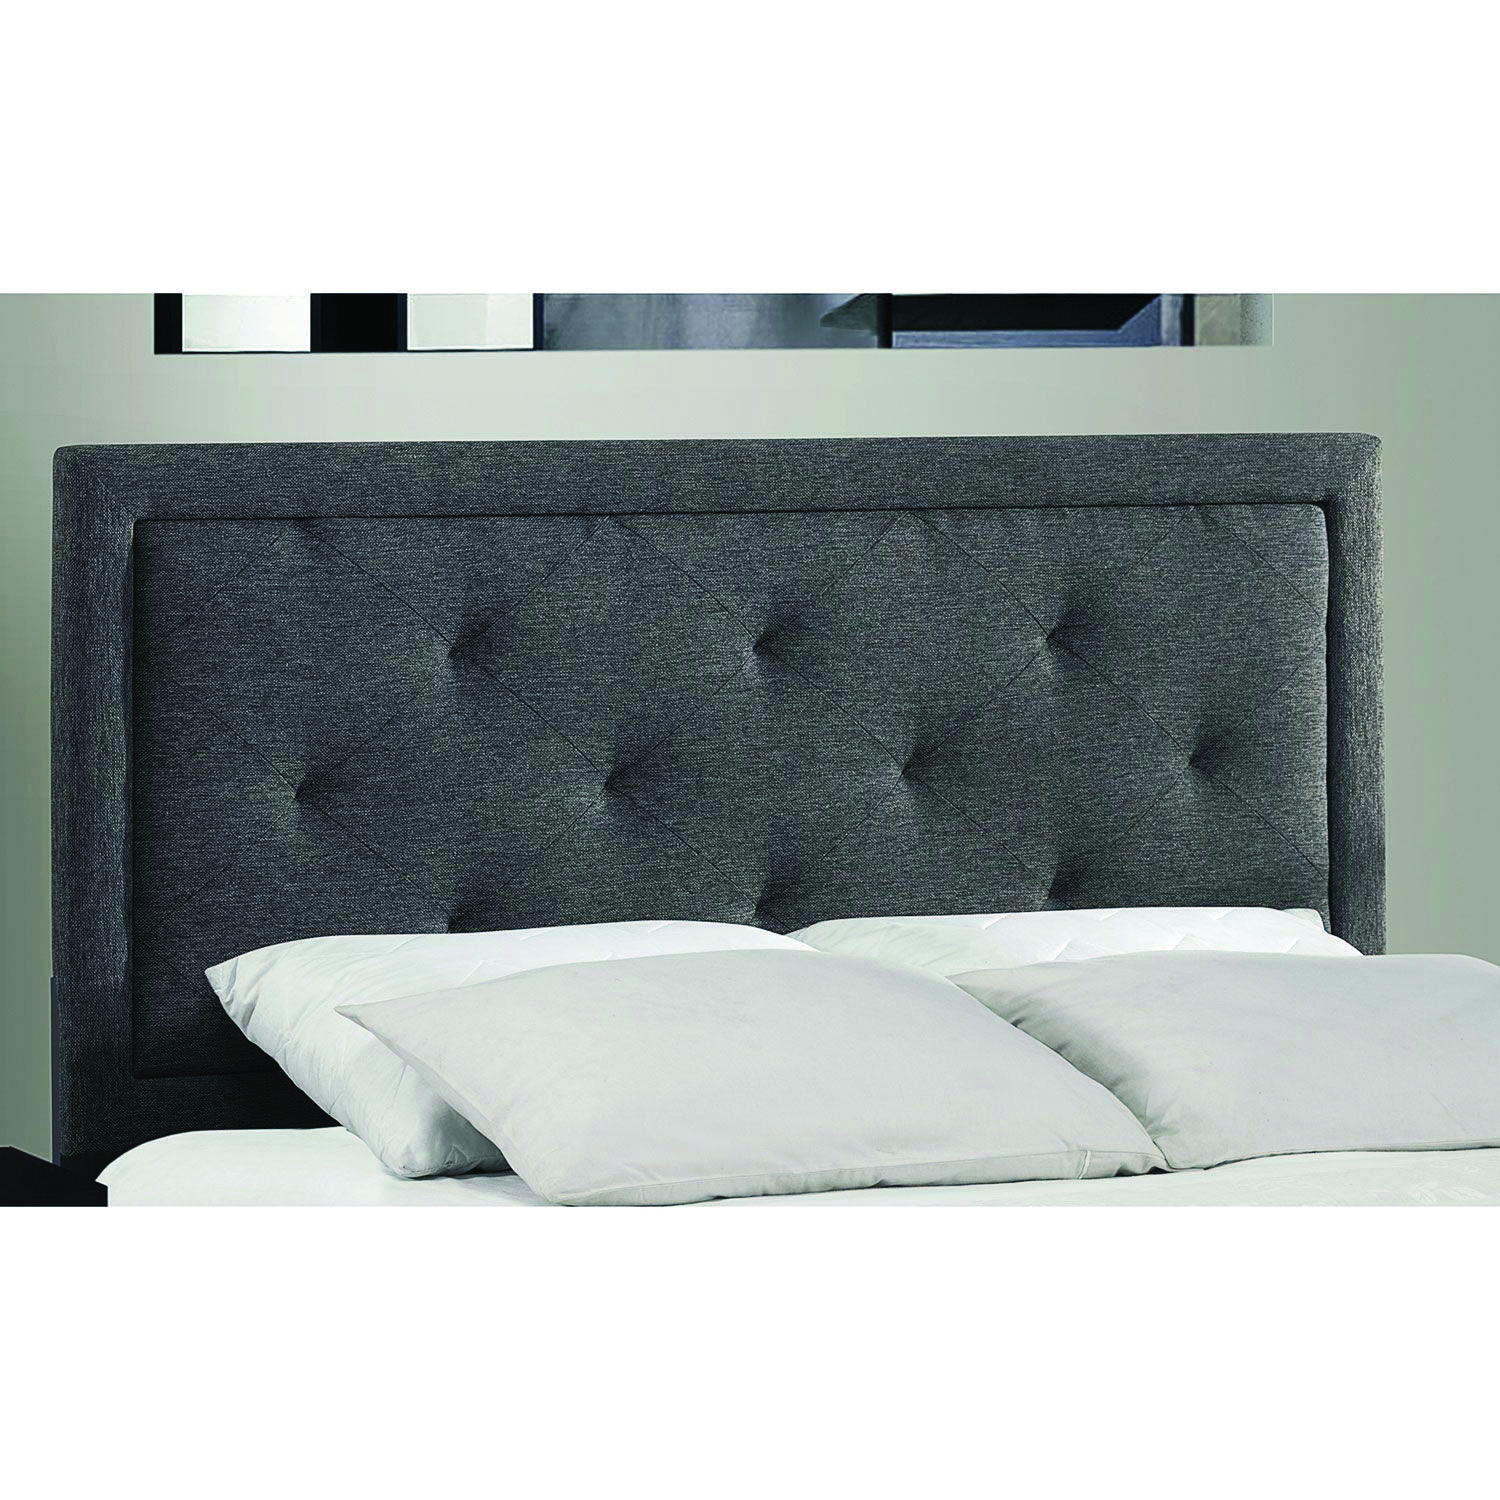 Leading Queen Headboard For Adjustable Bed Just On Mafahomes Com